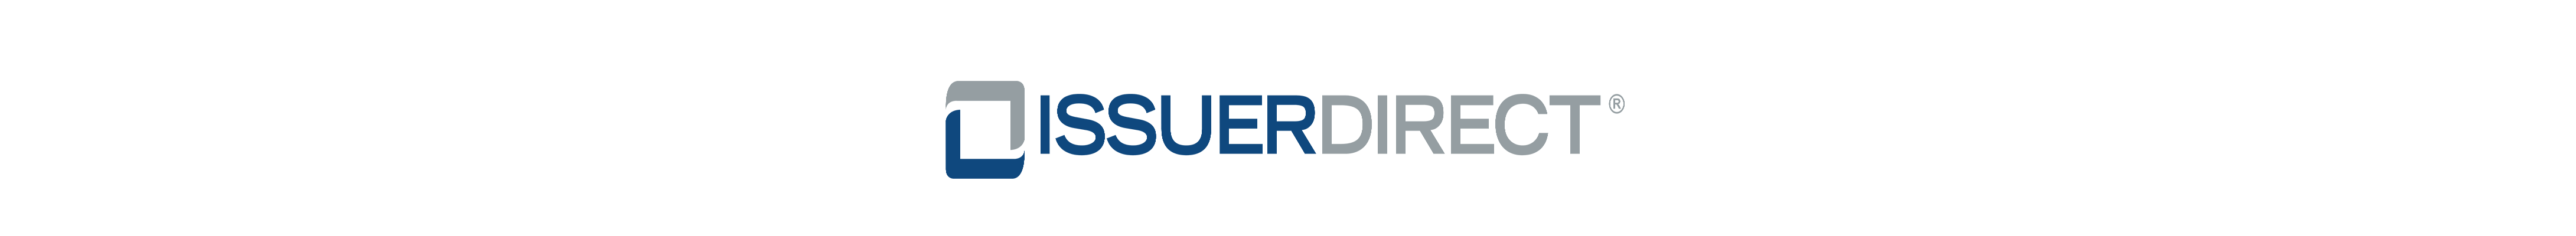 issuerdirect